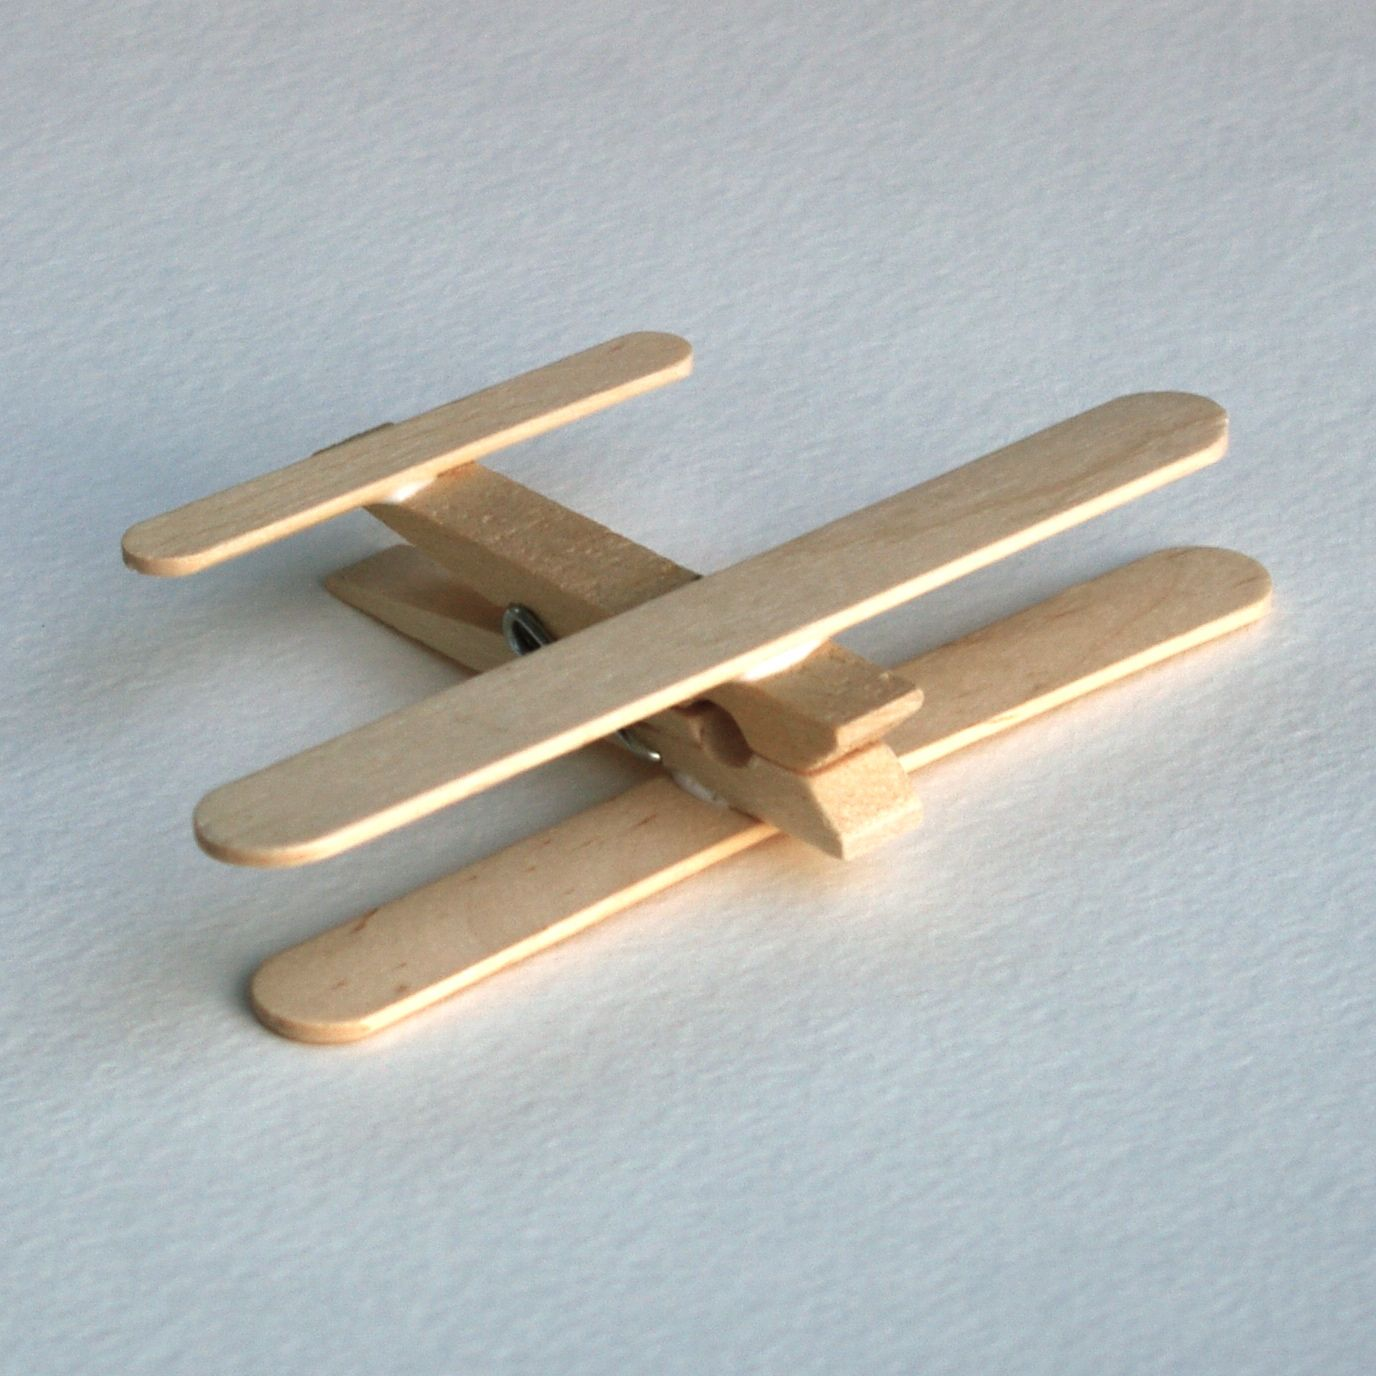 Airplanes Crafts For Toddlers